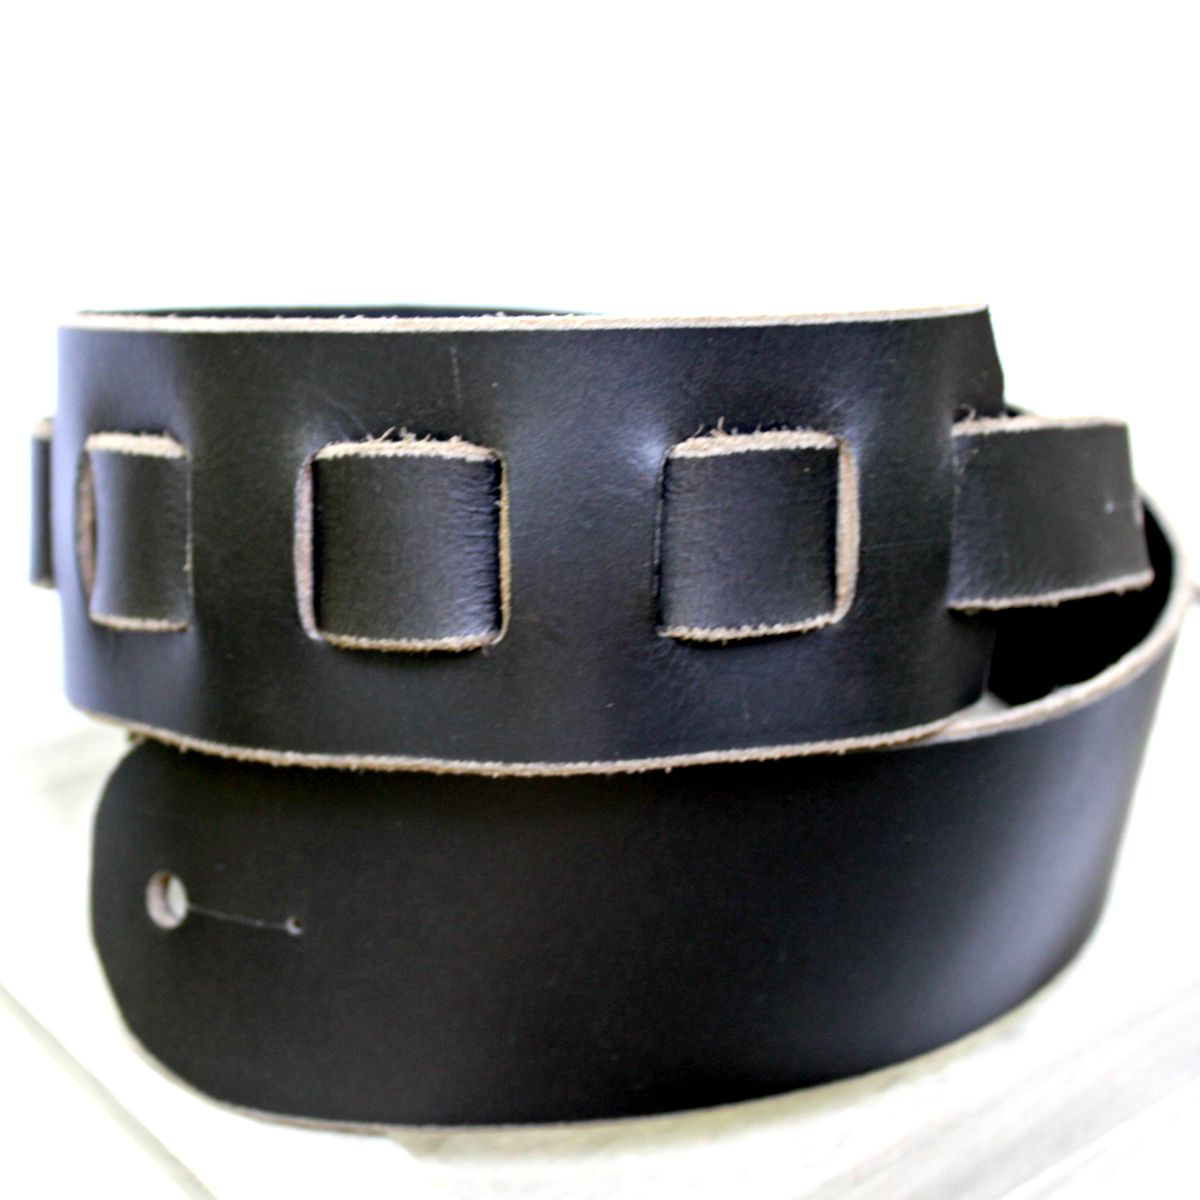 black-leather-guitar-strap-heavy-duty-the-leather-smithy_5